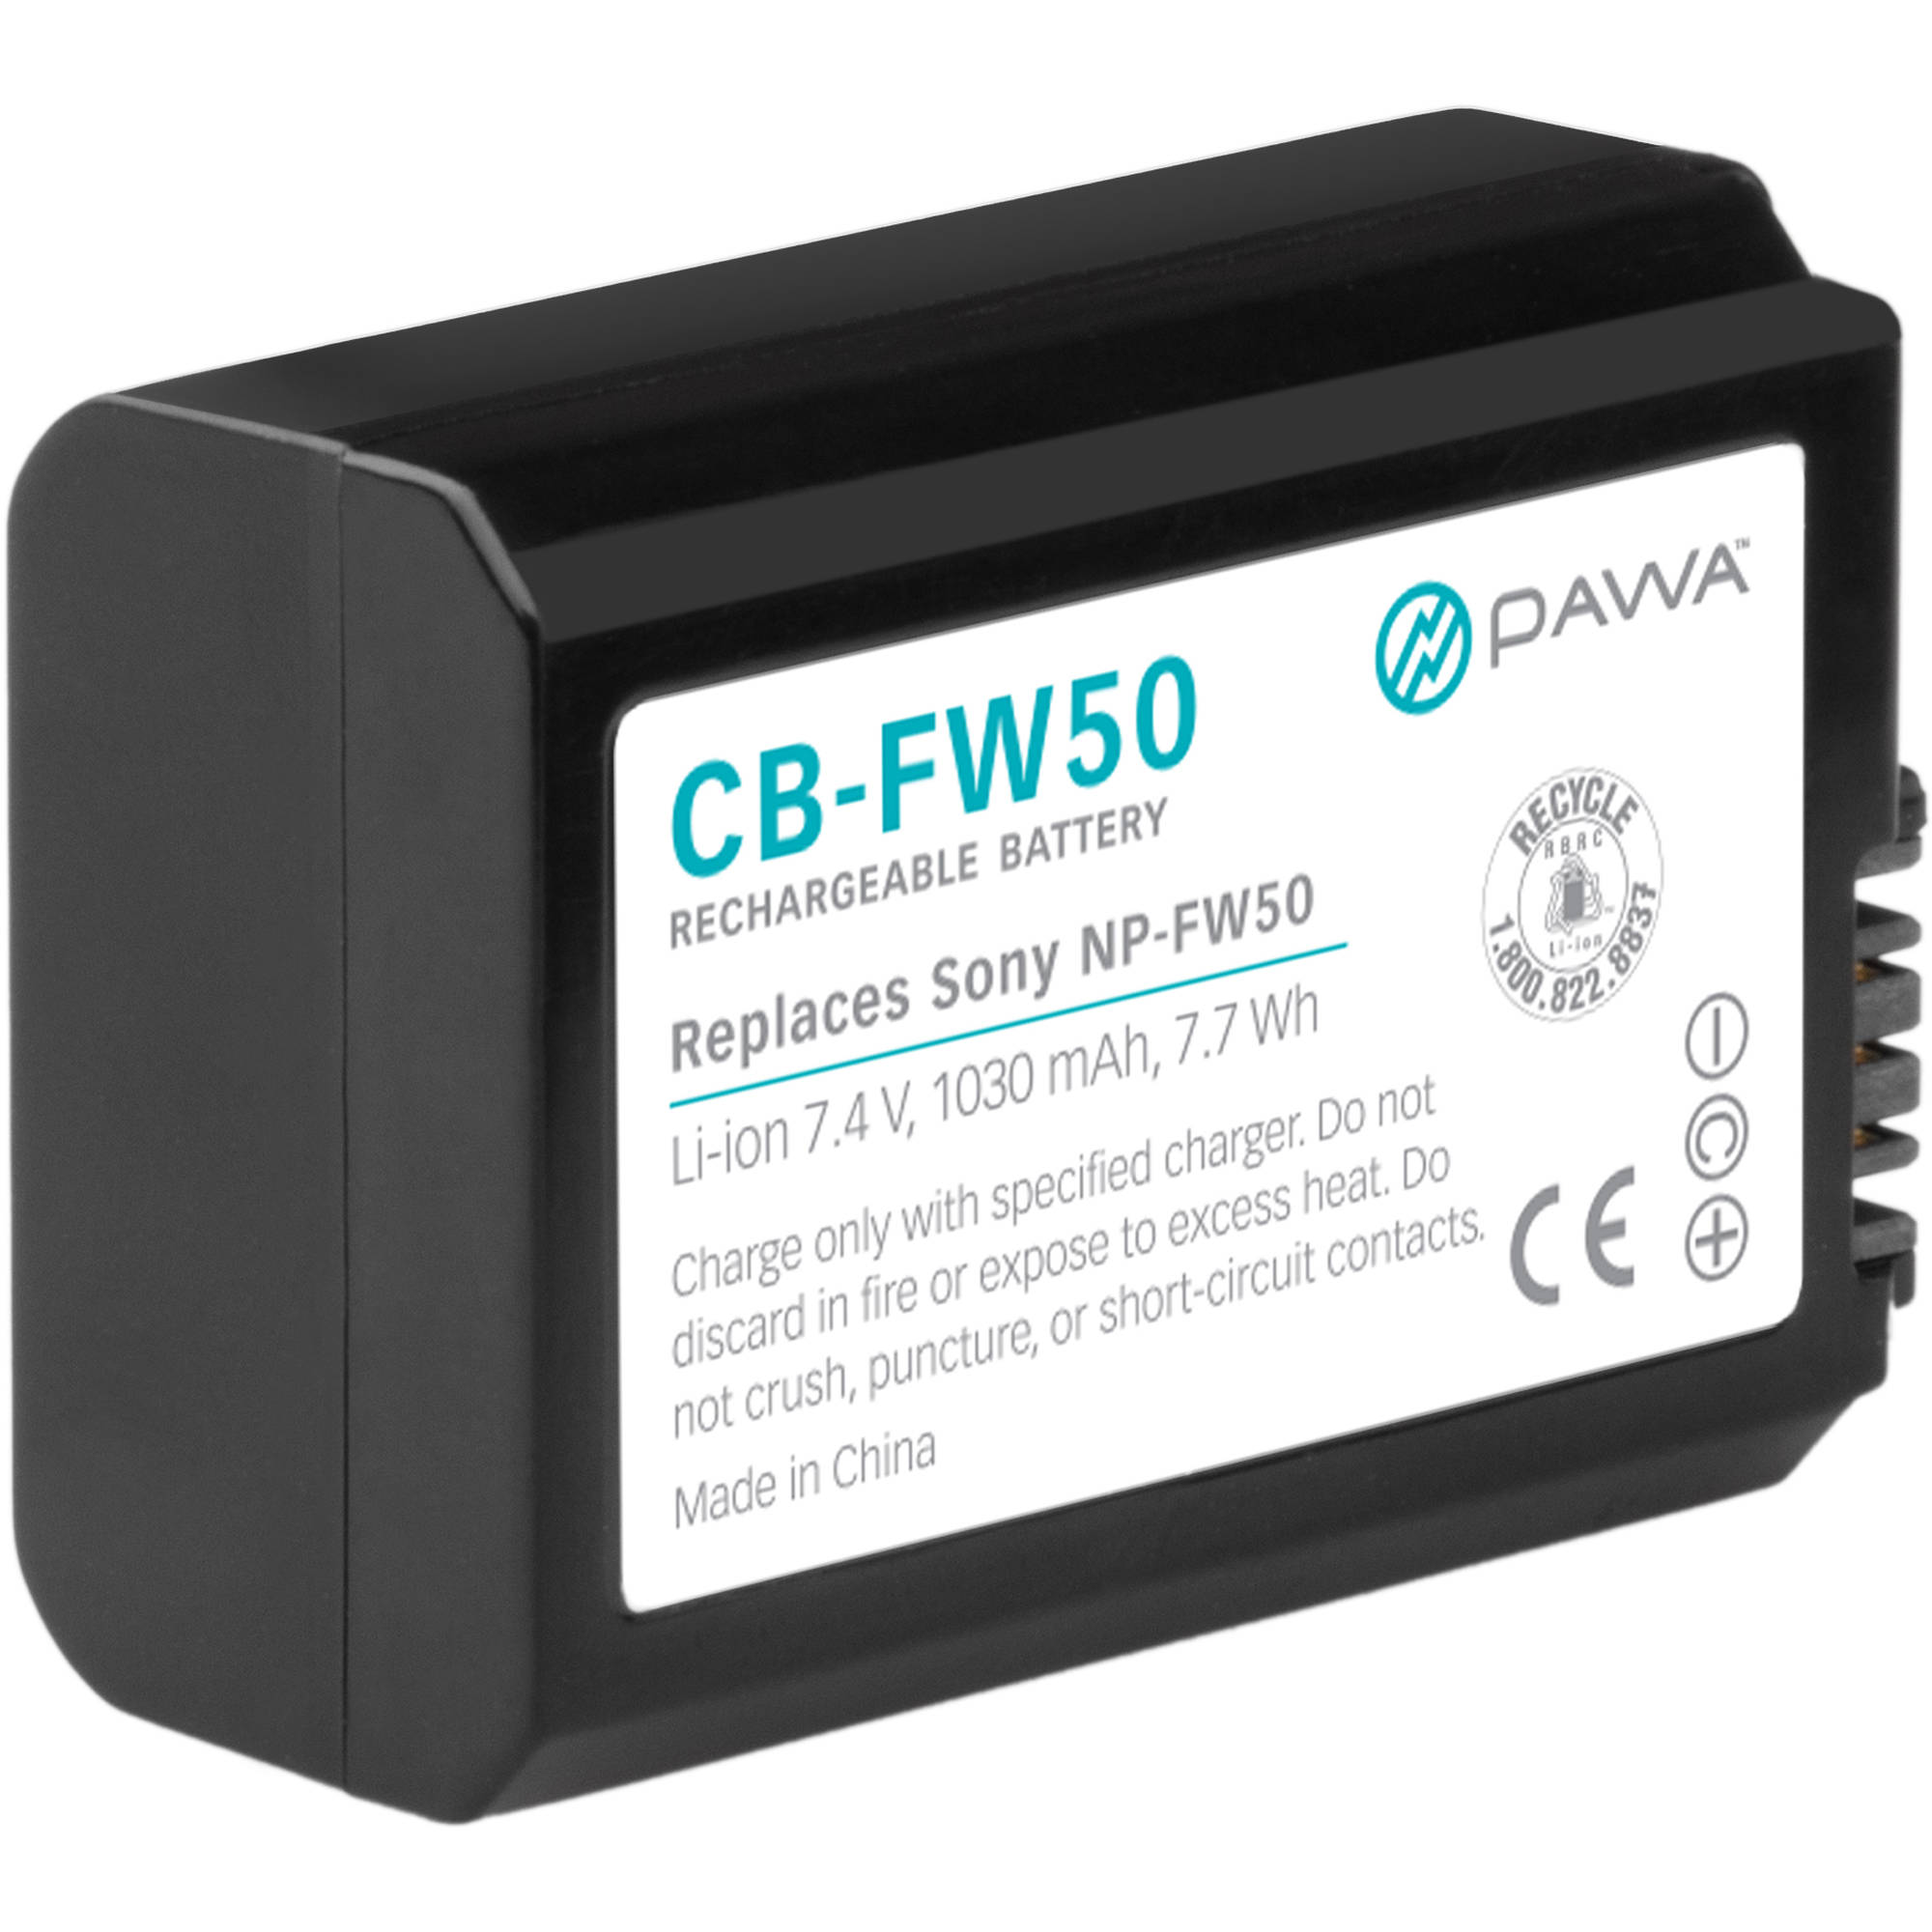 Lithium Ion Battery >> Pawa Np Fw50 Lithium Ion Battery Pack 7 4v 1030mah